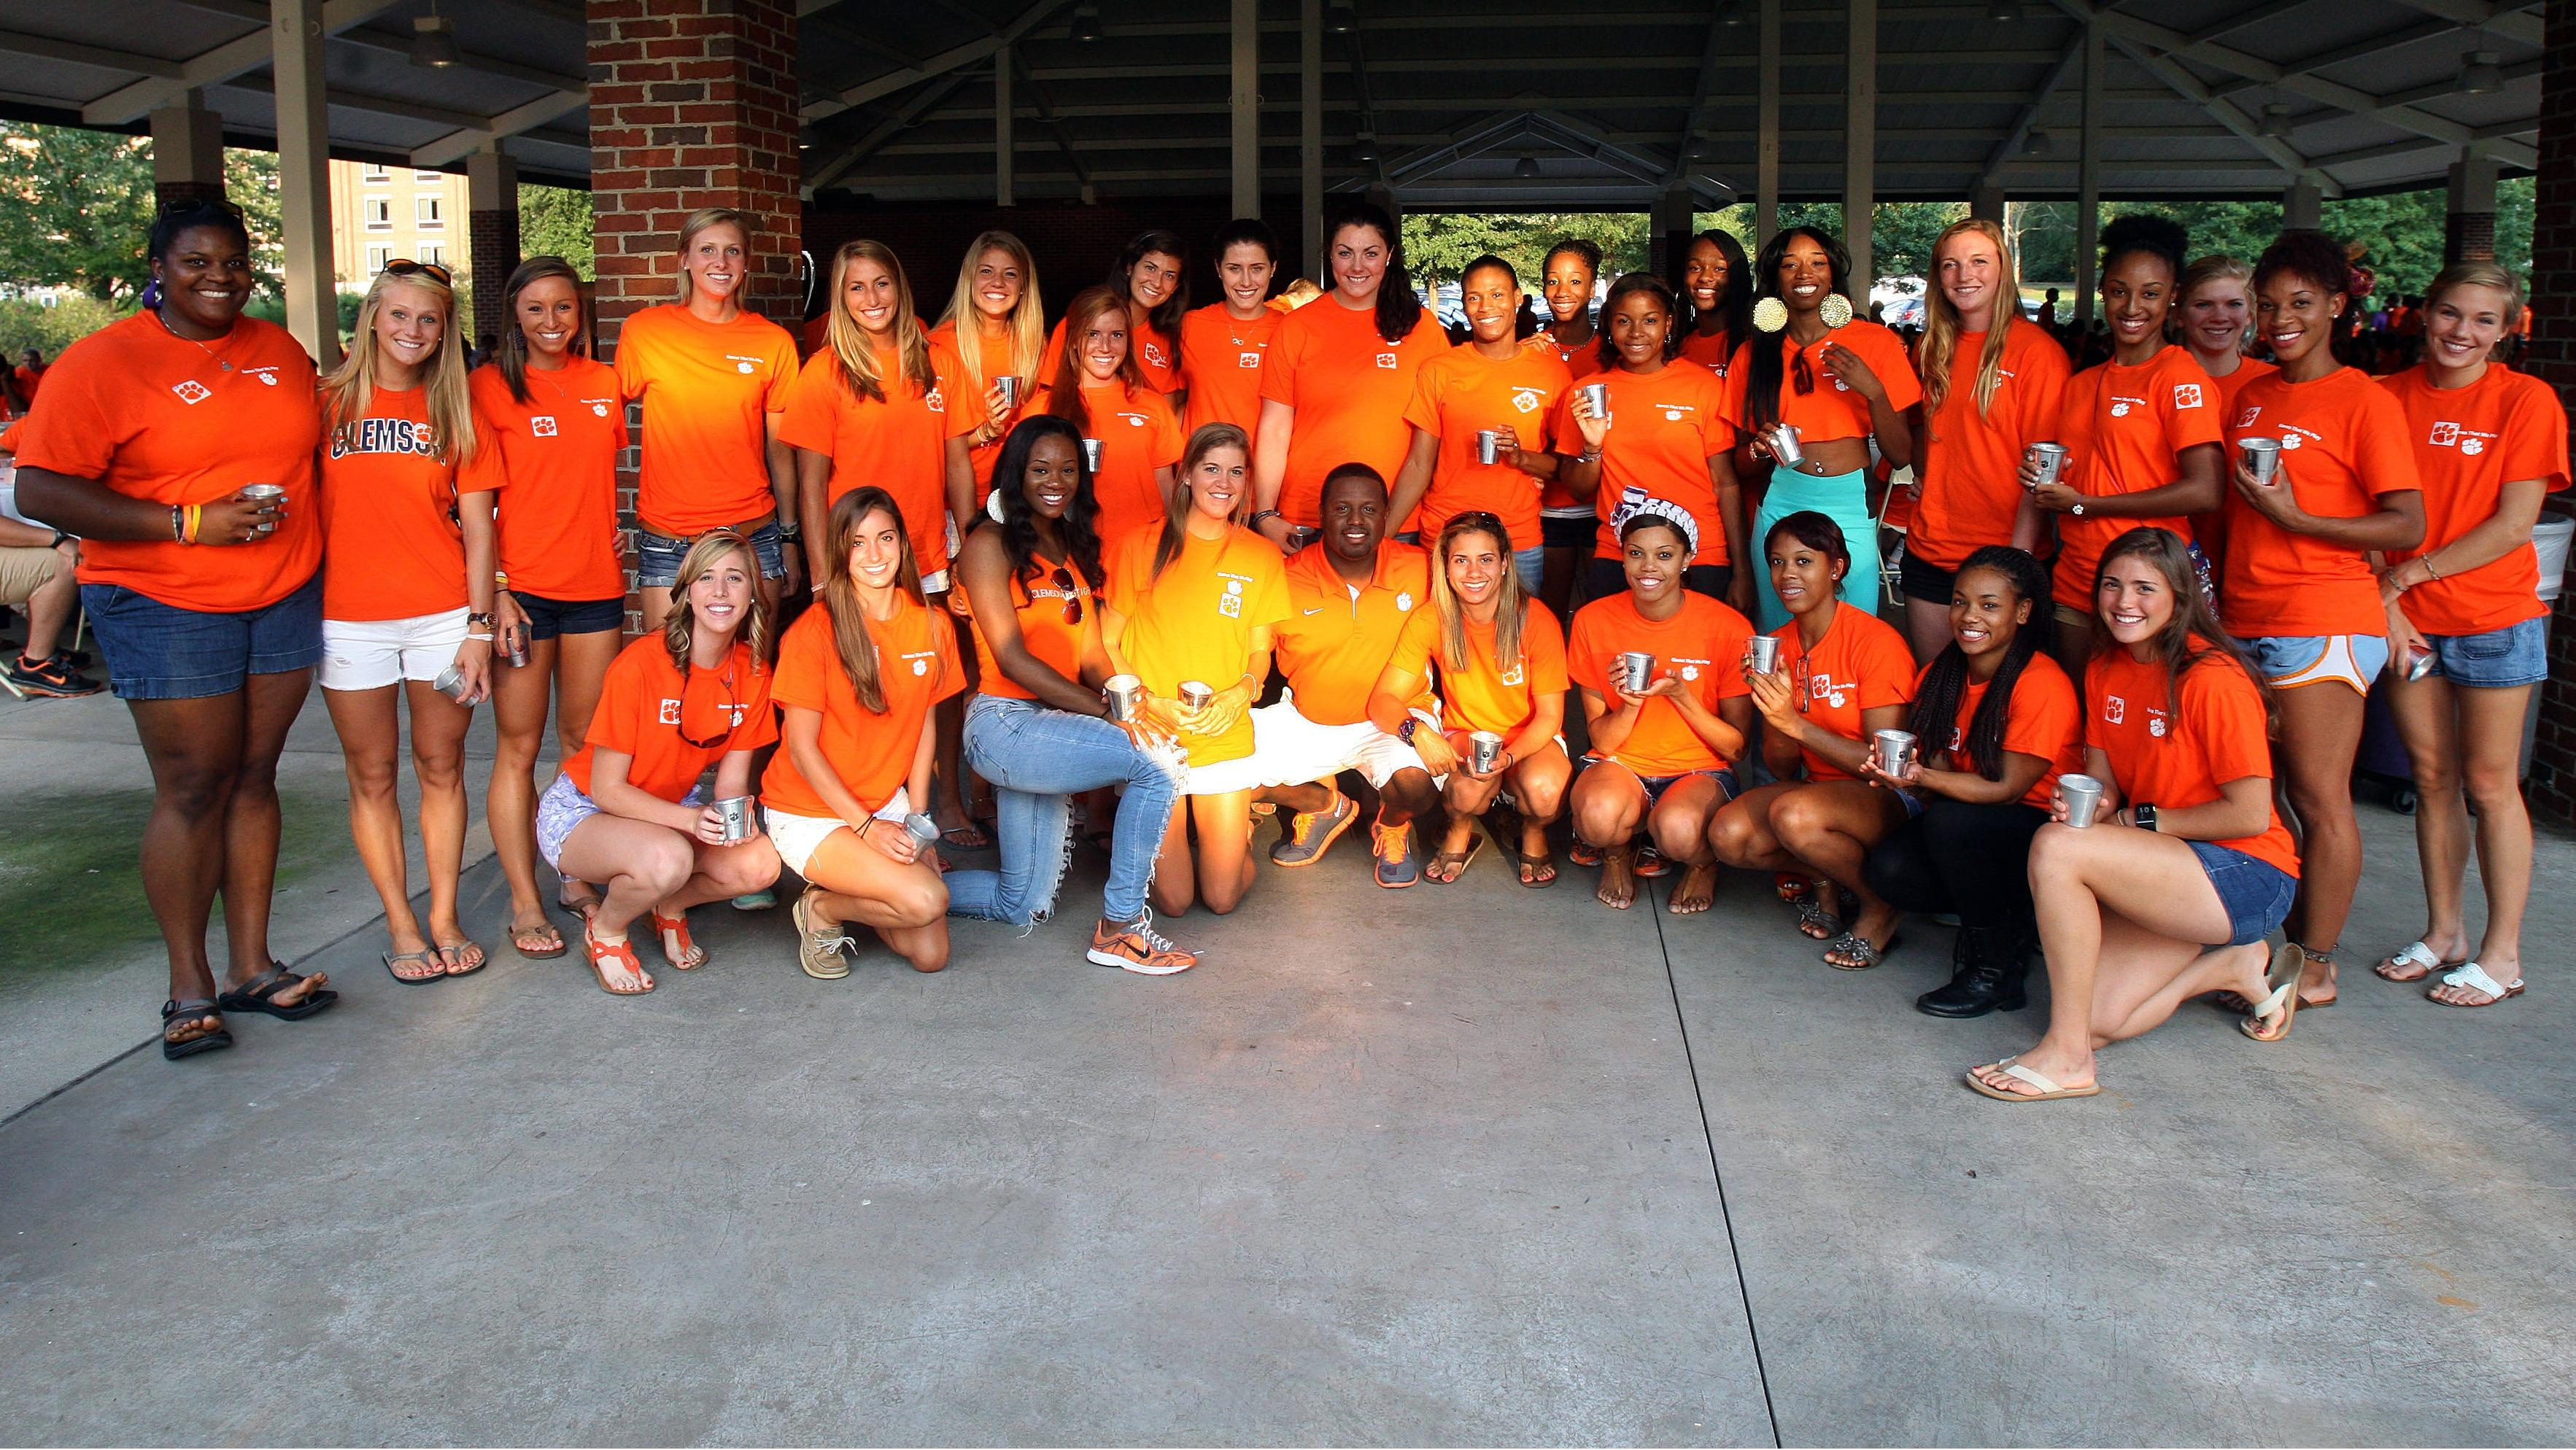 Clemson Women's Track & Field/Cross Country Team Awarded President's Pride Cup for 2011-12